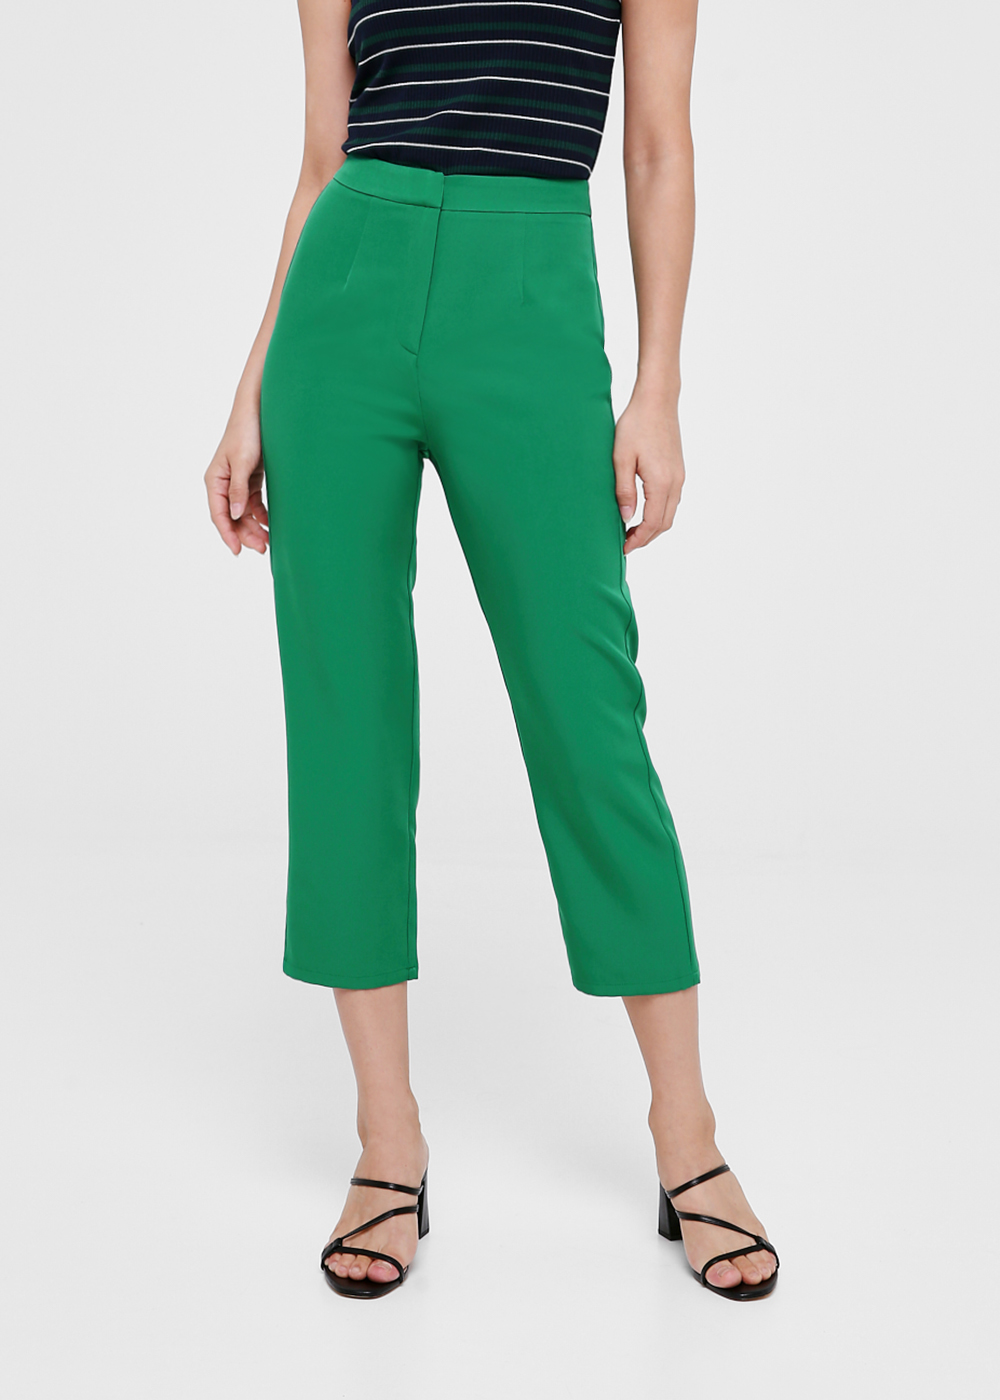 Vida Slim Fit Crop Pants